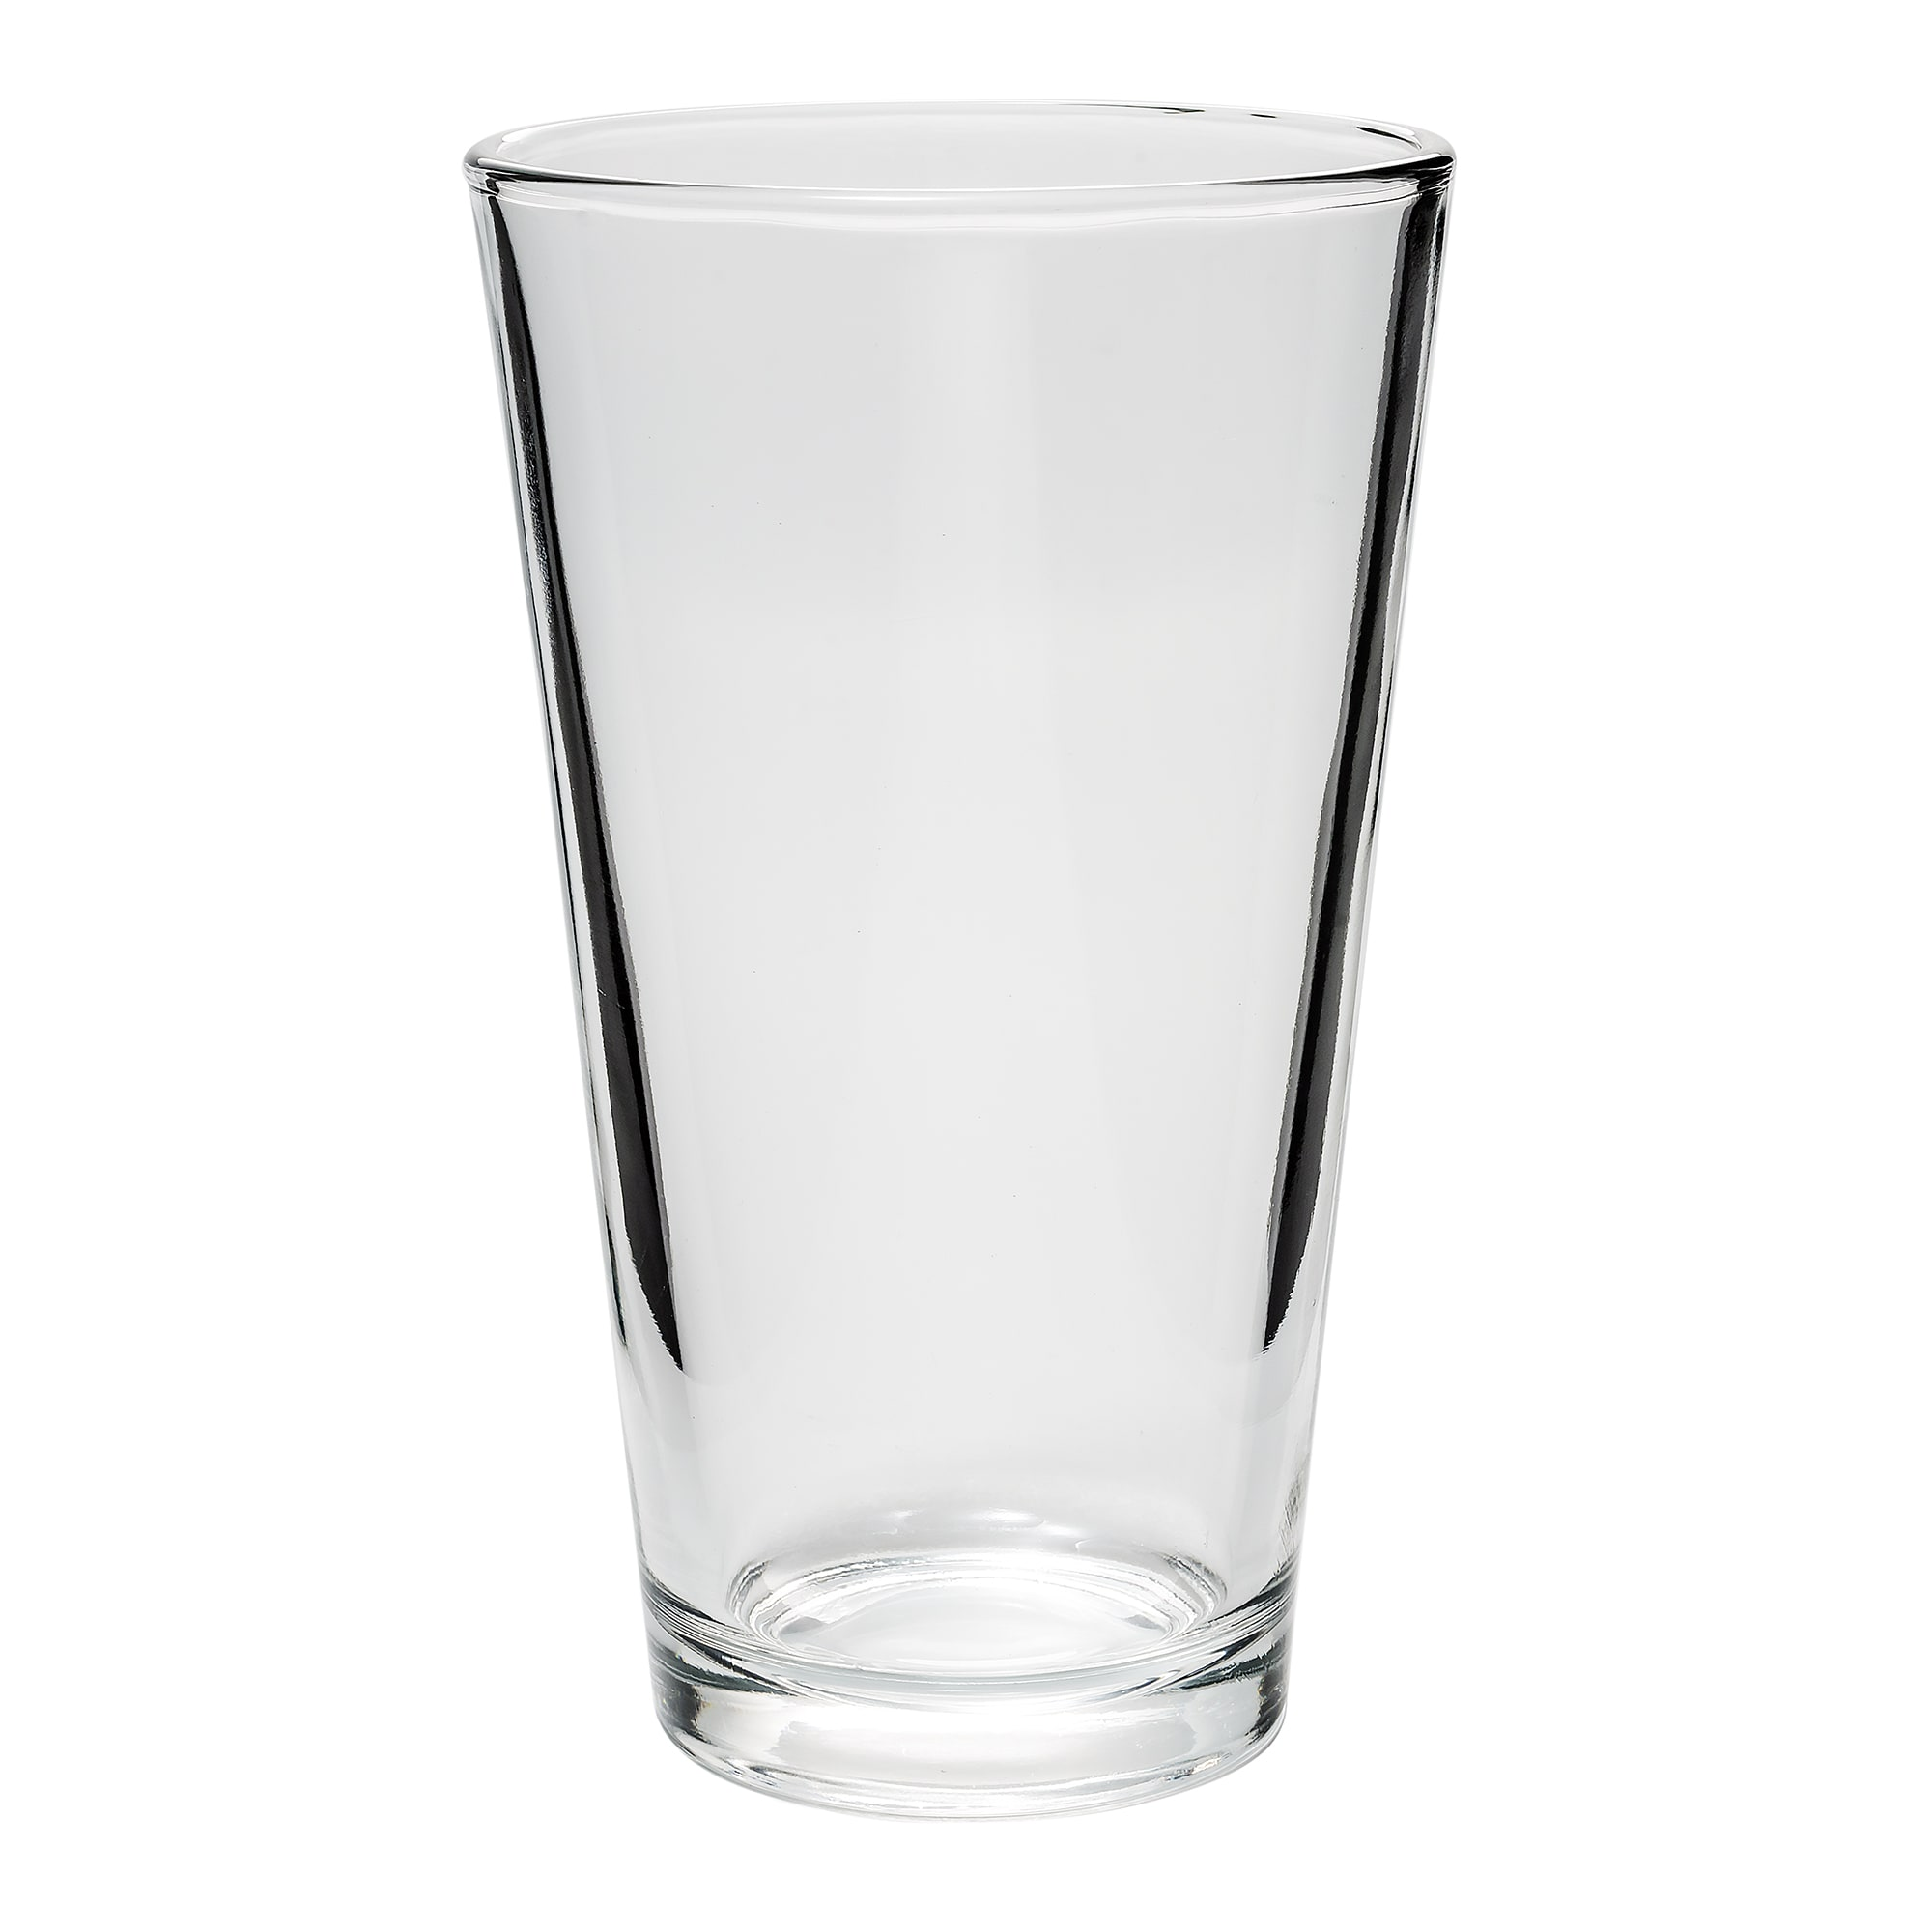 libbey 5139 16 oz mixing glass - 16 Oz Glass